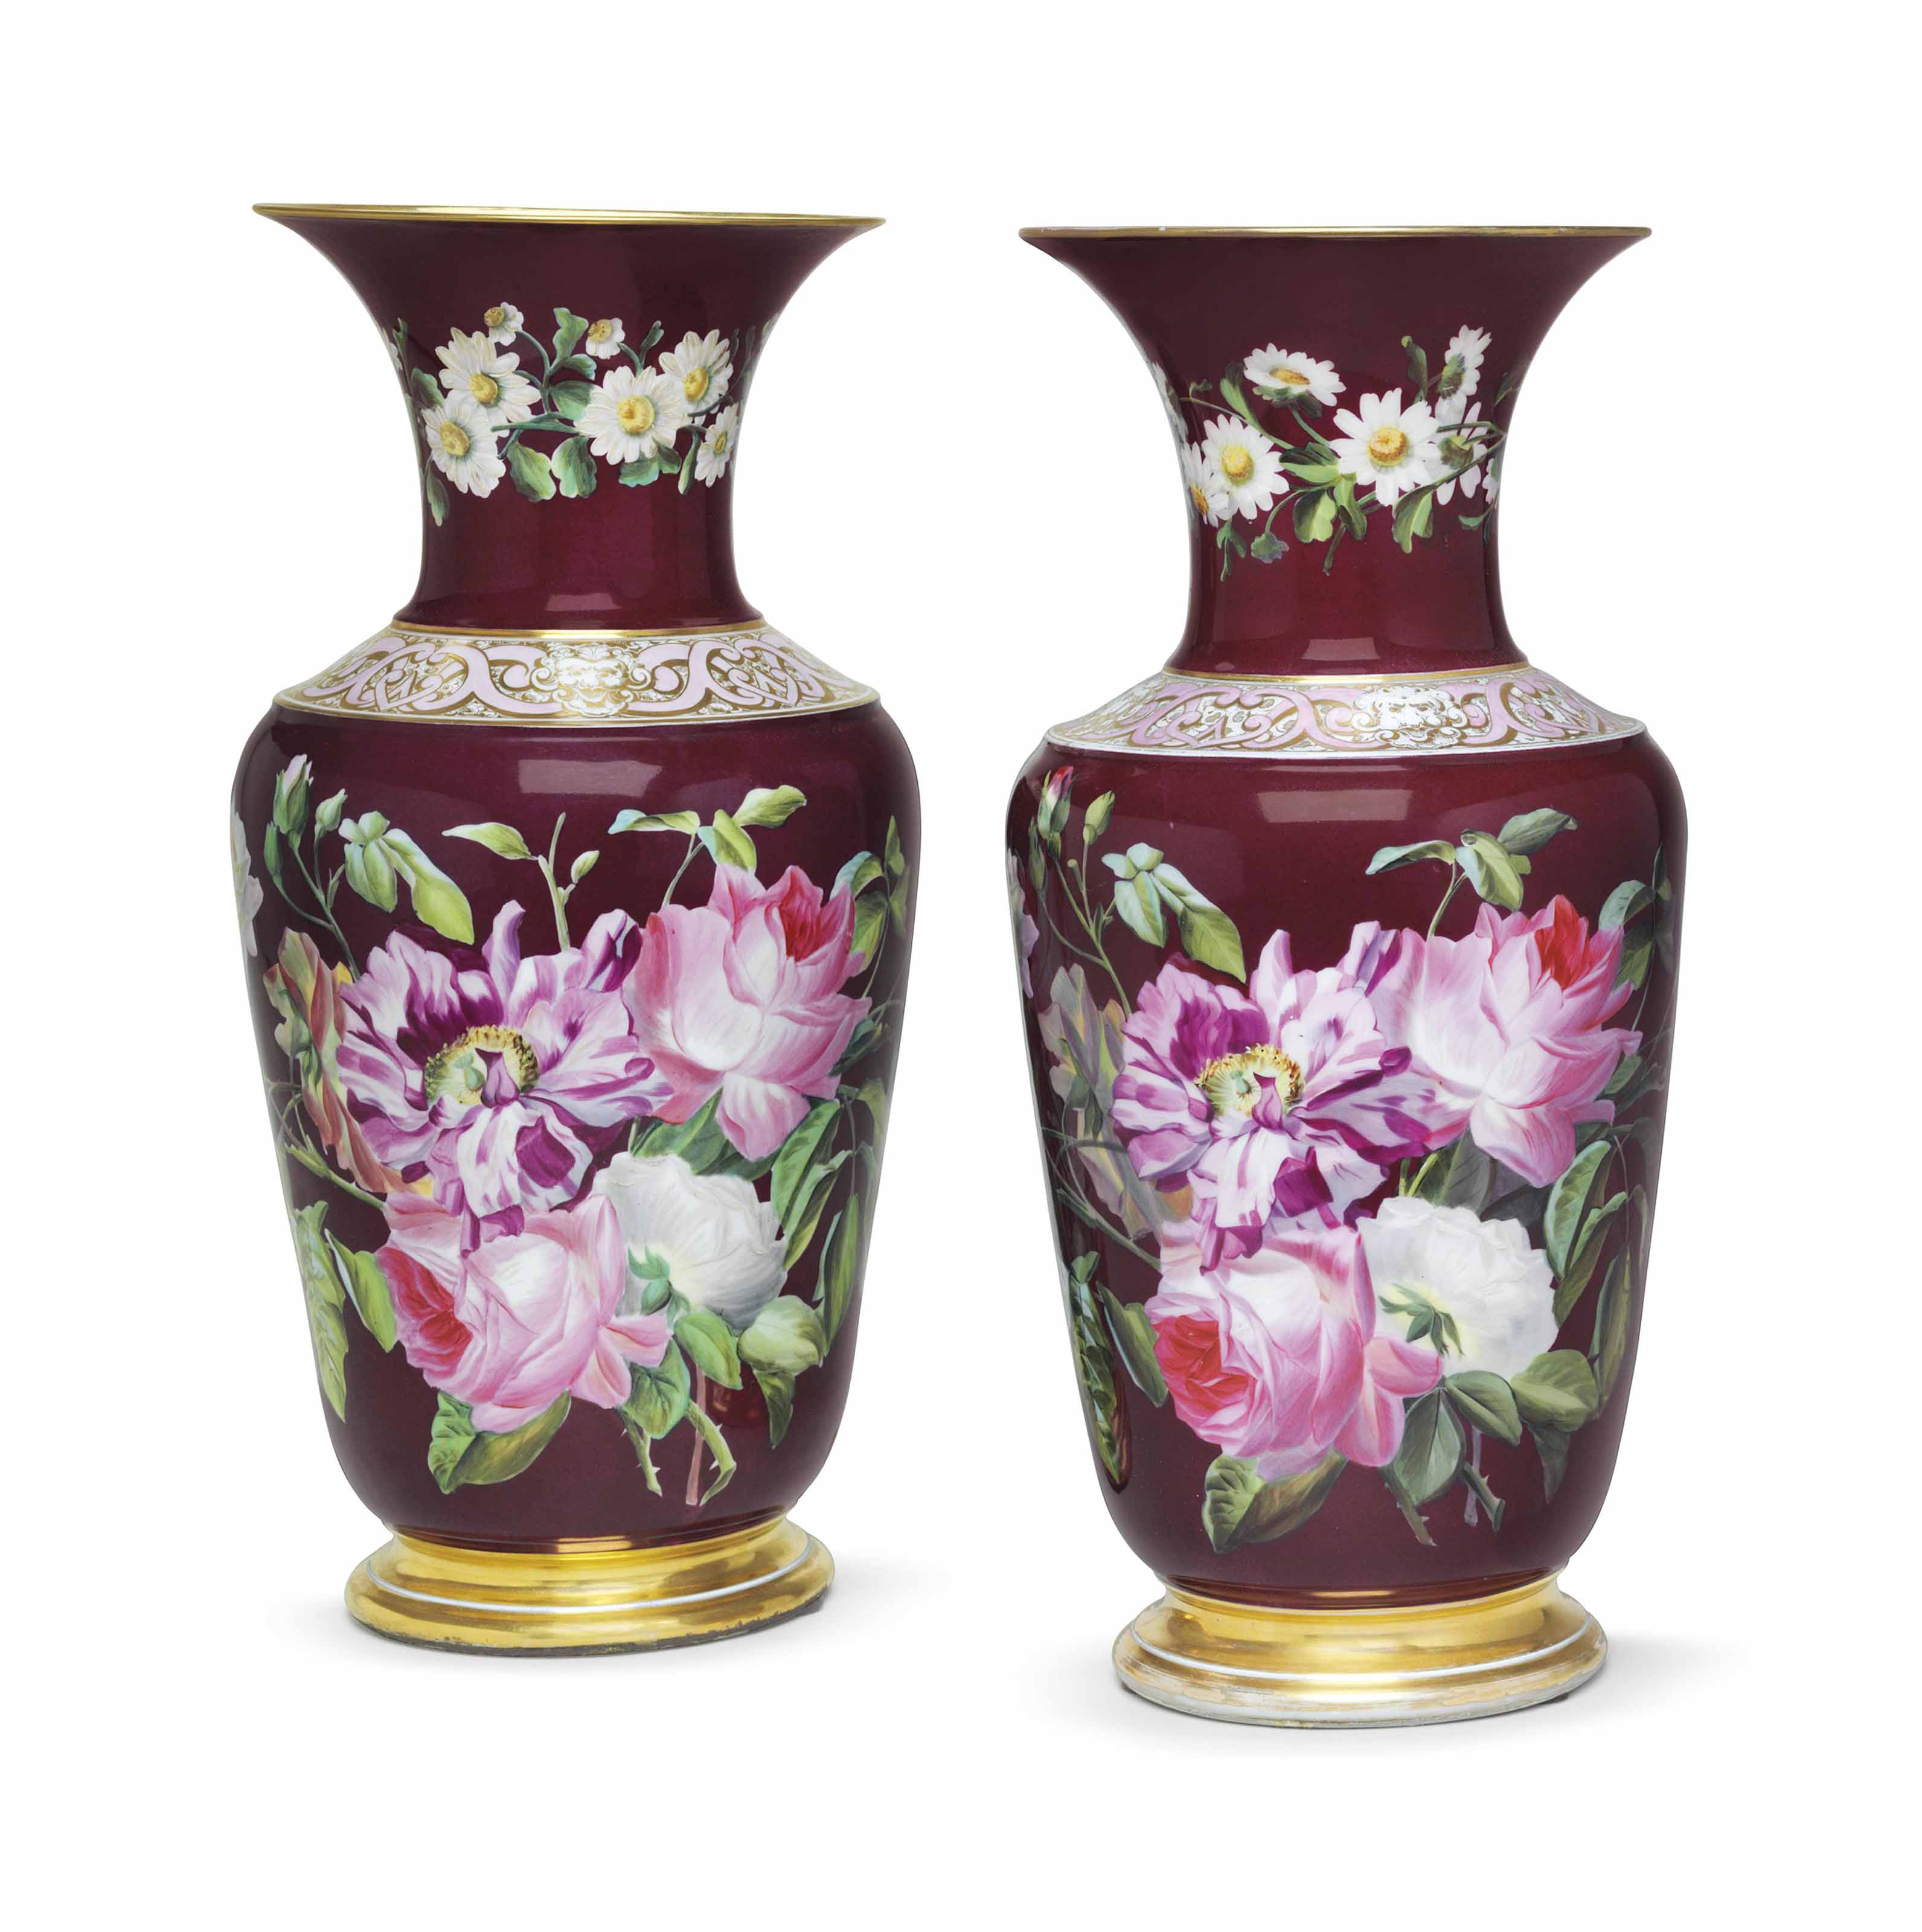 A PAIR OF FRENCH PORCELAIN BUR